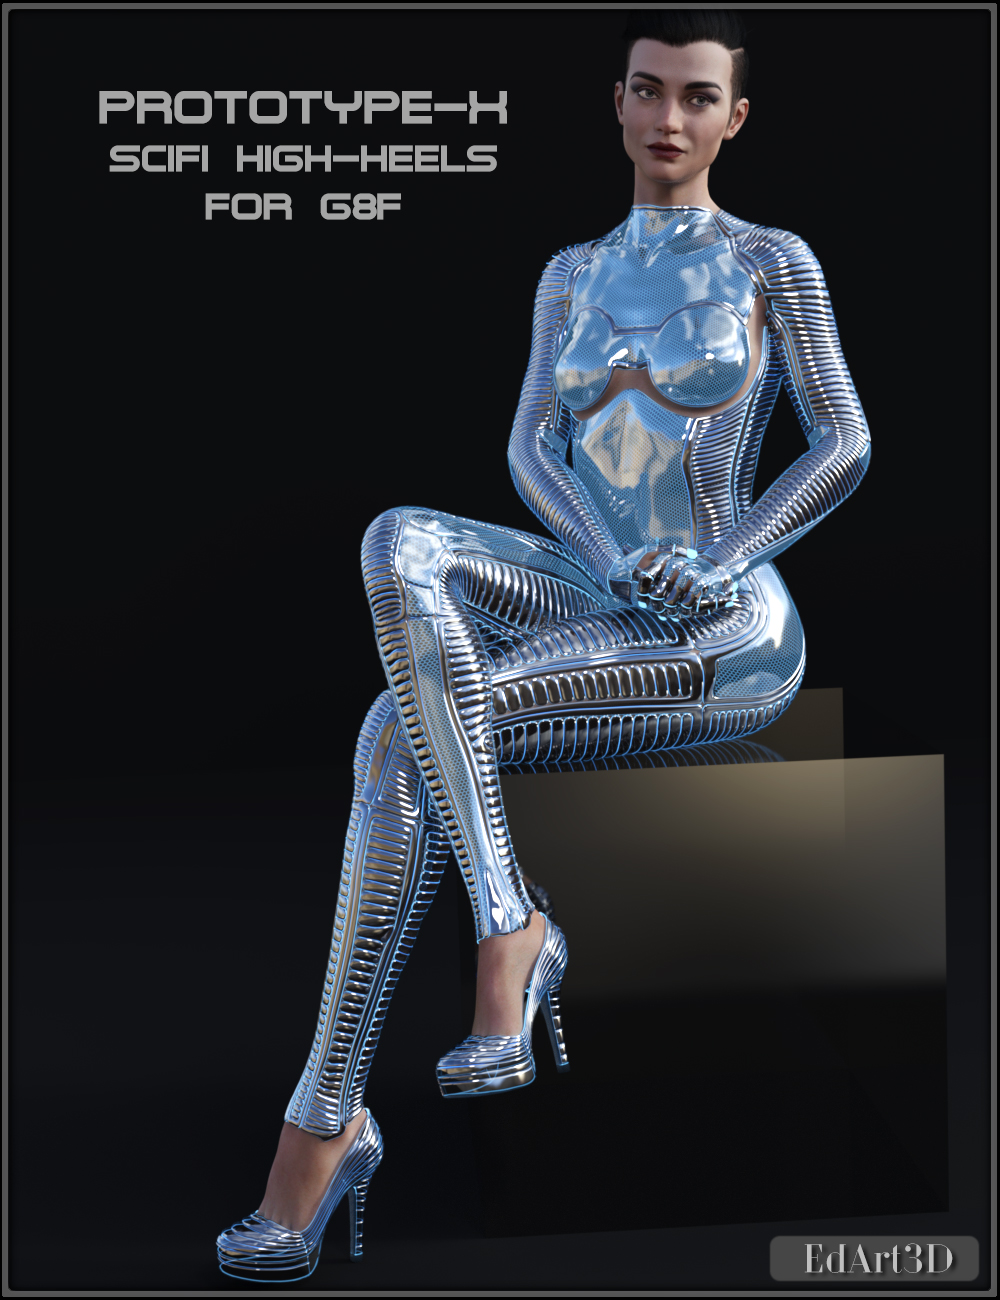 PROTOTYPE-X - SciFi High-Heels - for G8F